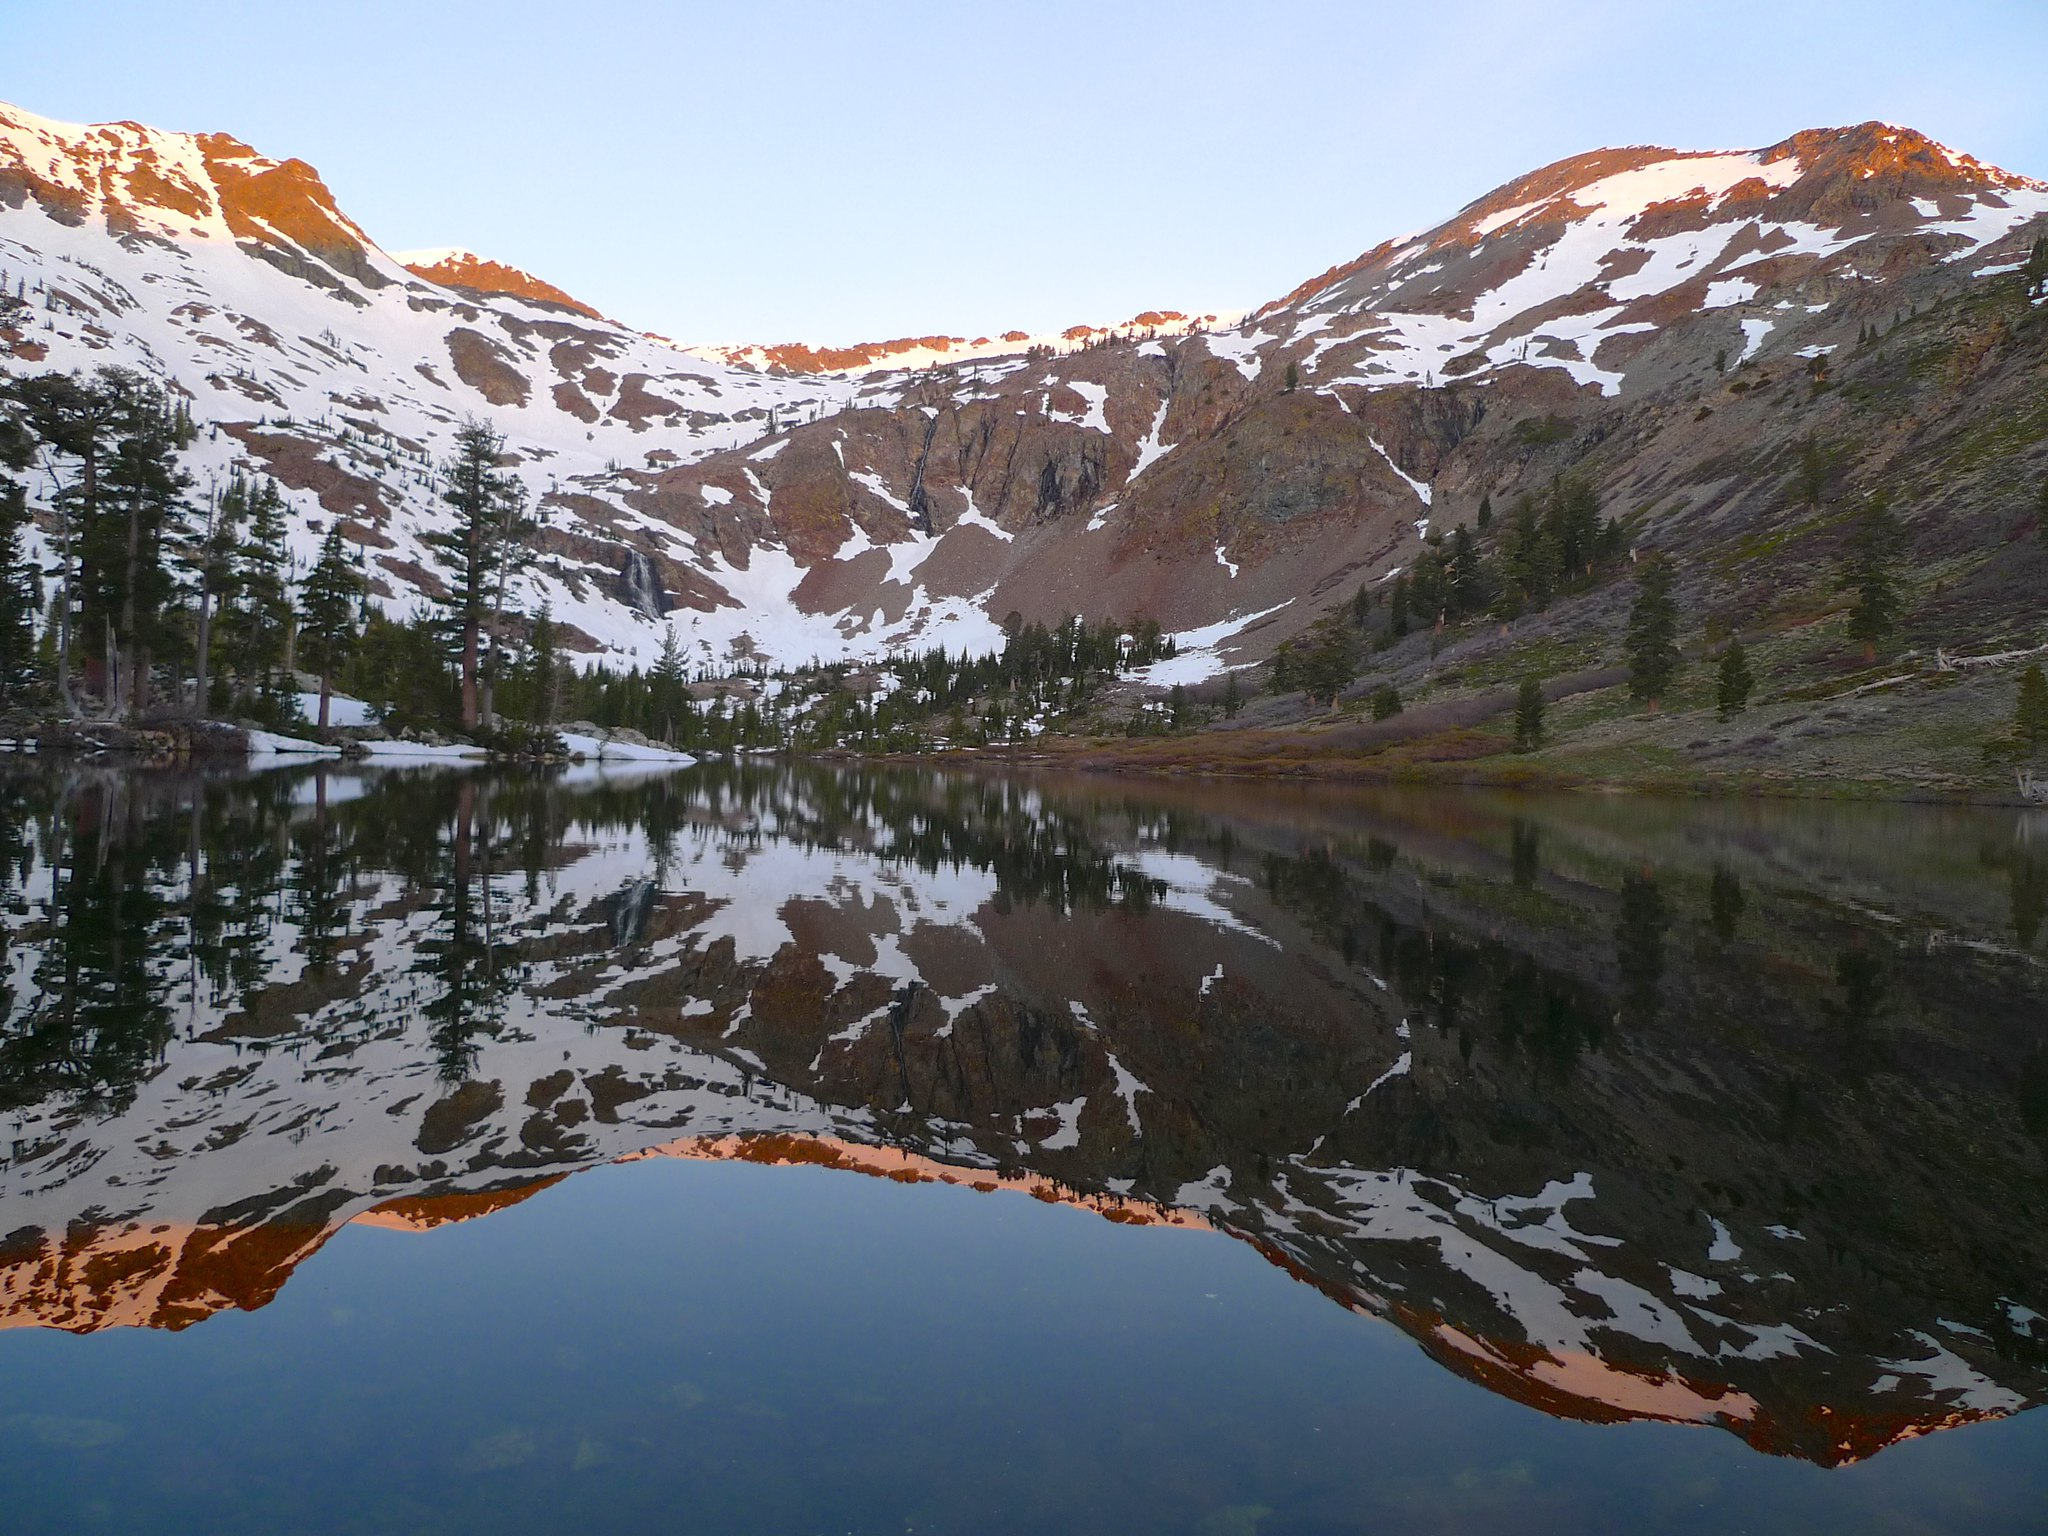 Alpenglow at Half Moon Lake